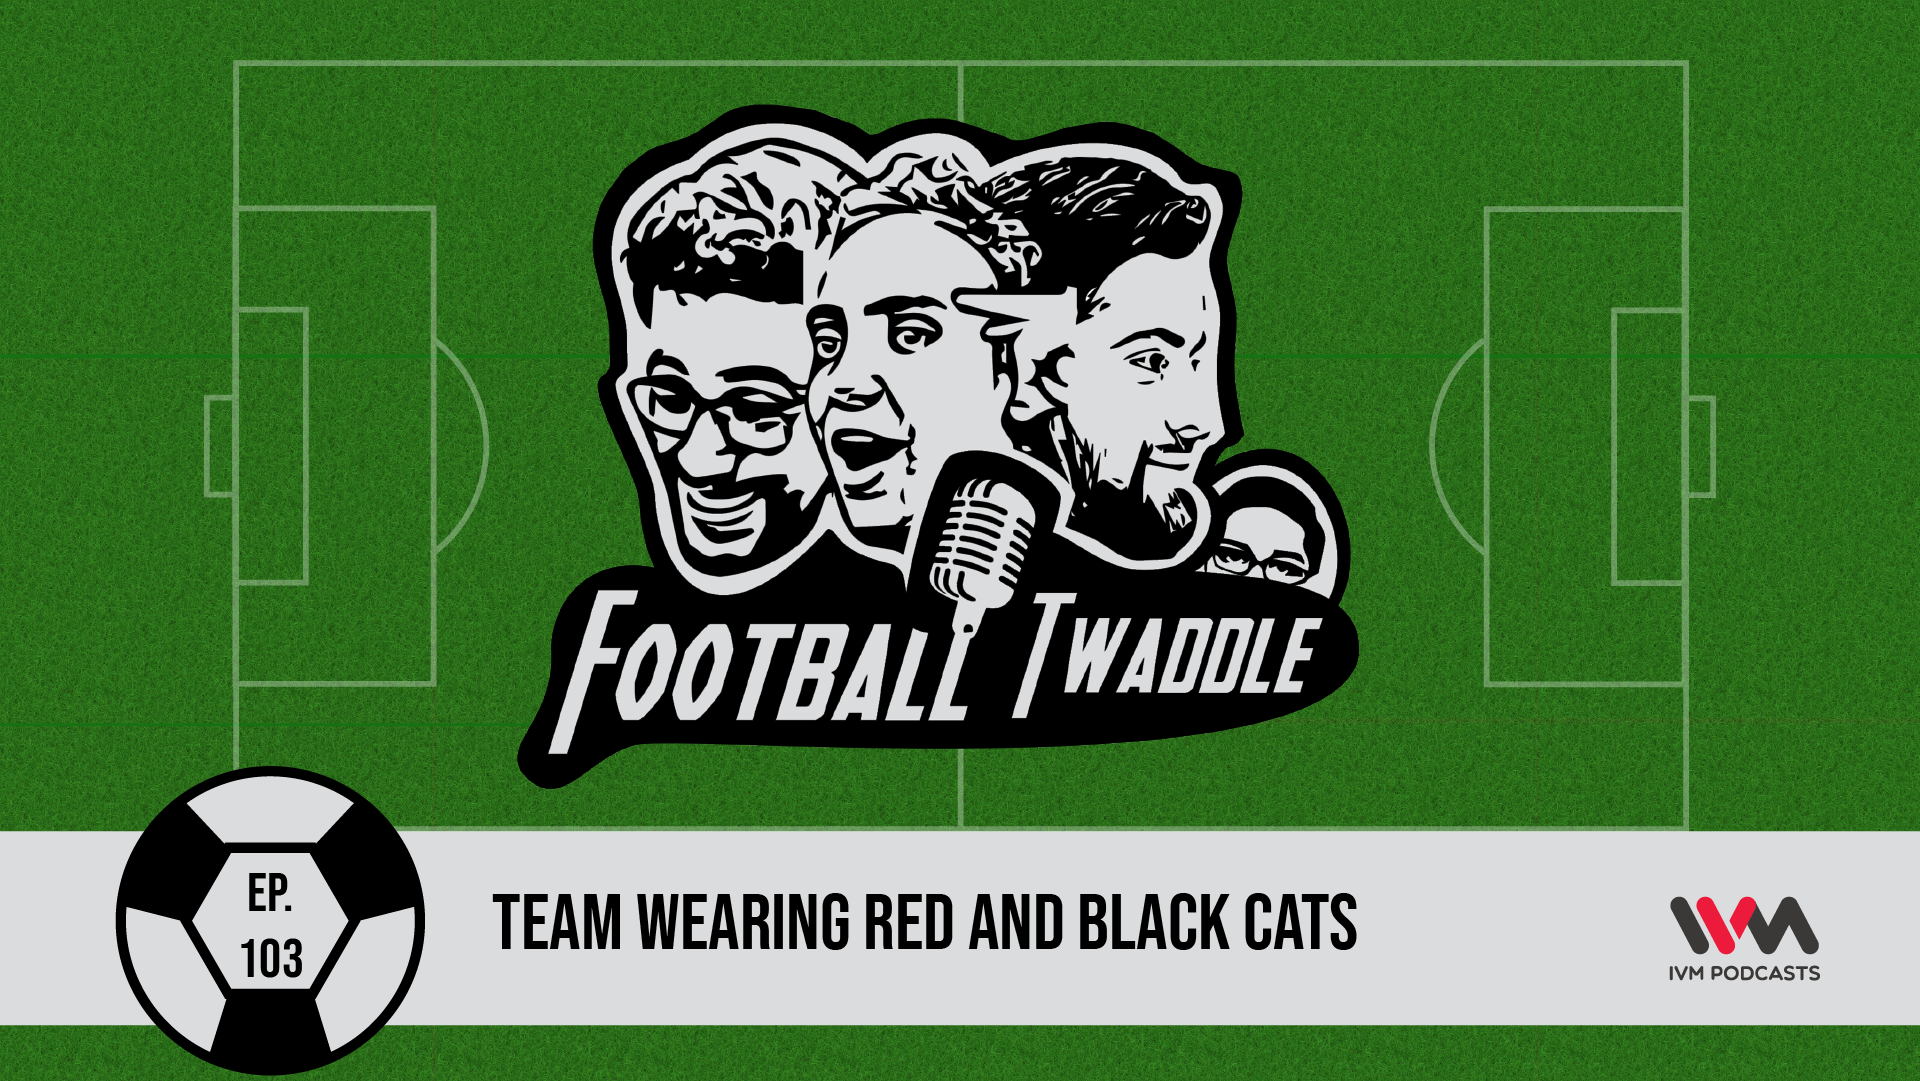 FootballTwaddleEpisode103.png